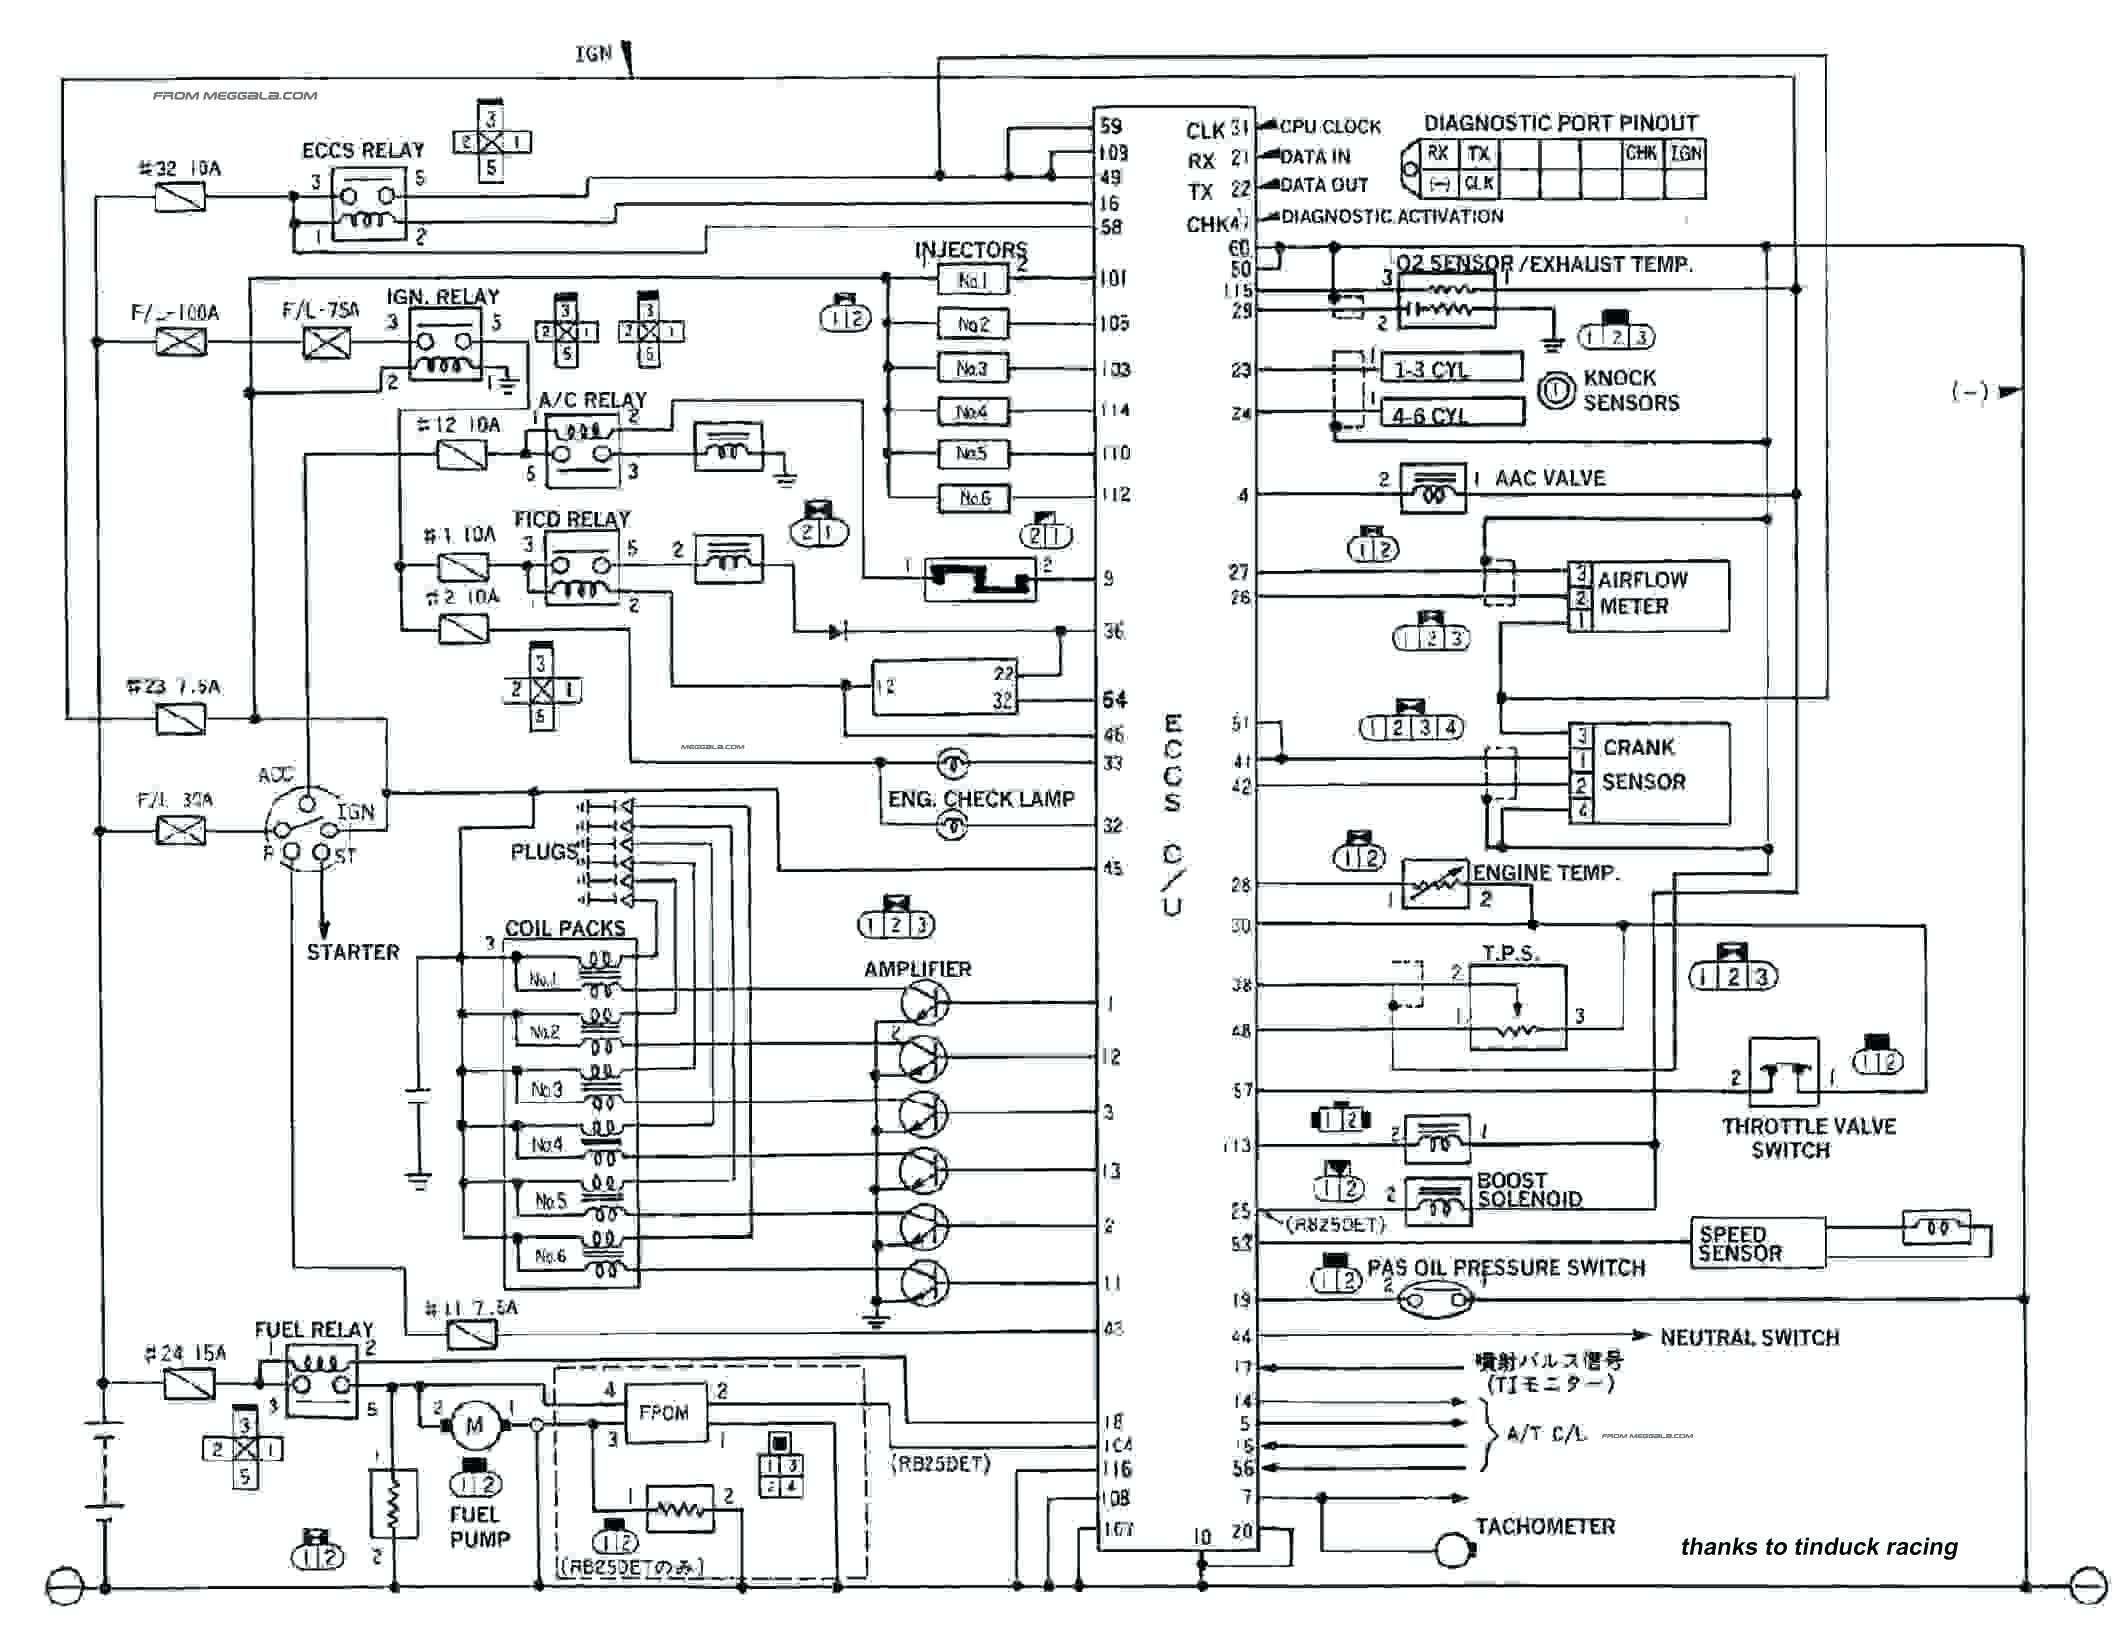 Sr20det Engine Diagram Nissan Sr20det Engine Wiring Diagram Documents  Download Here Sr20 Of Sr20det Engine Diagram